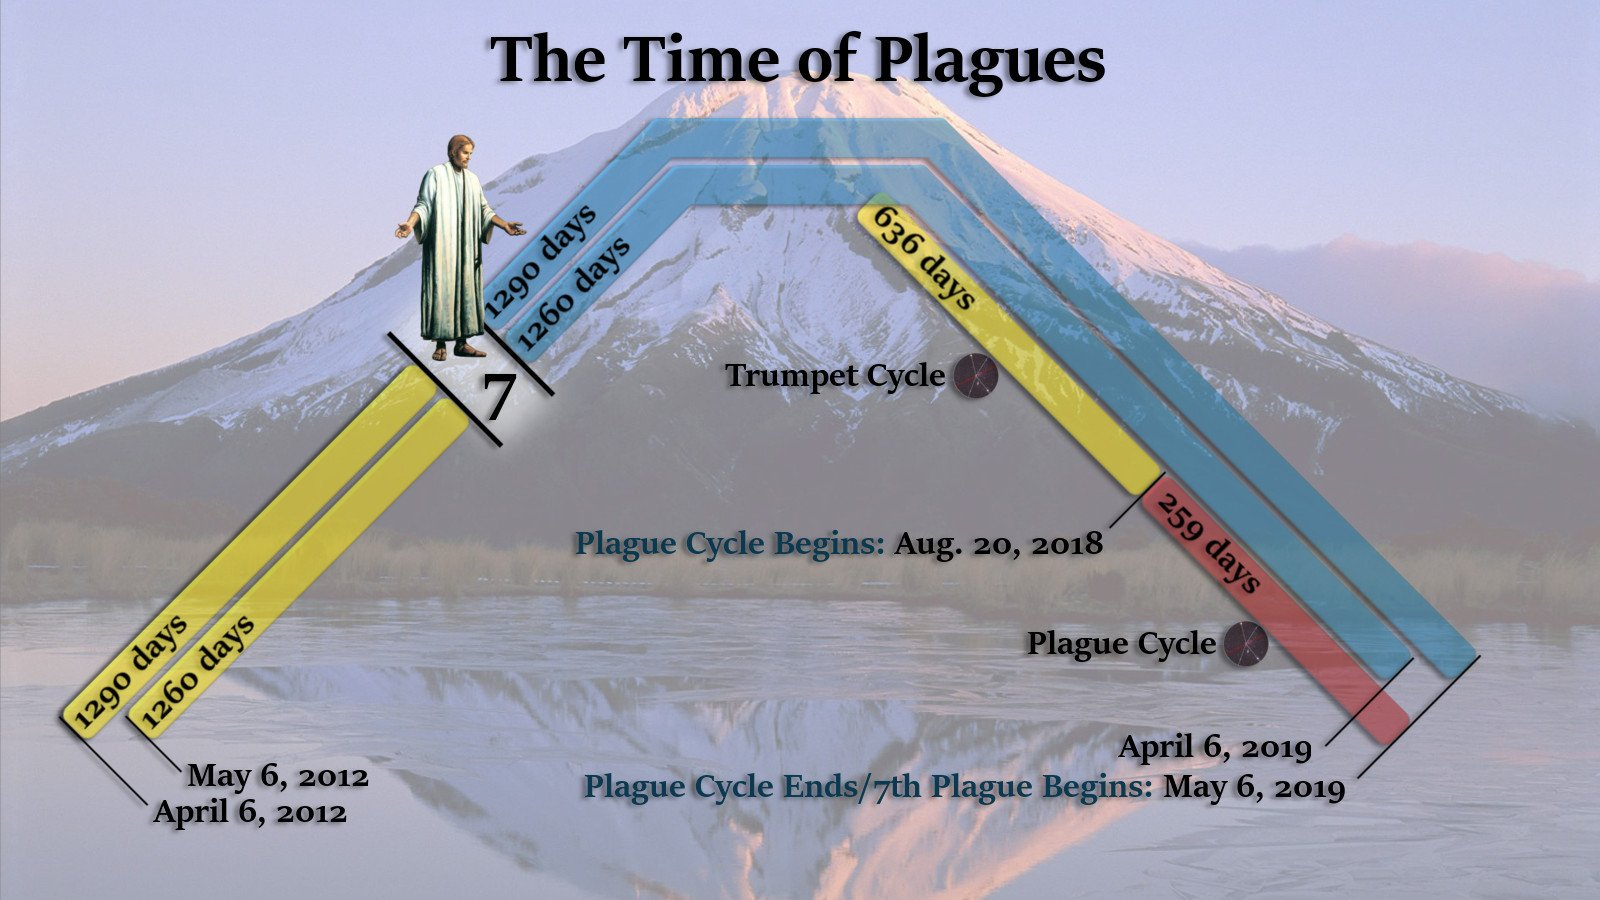 The timeline of plagues.